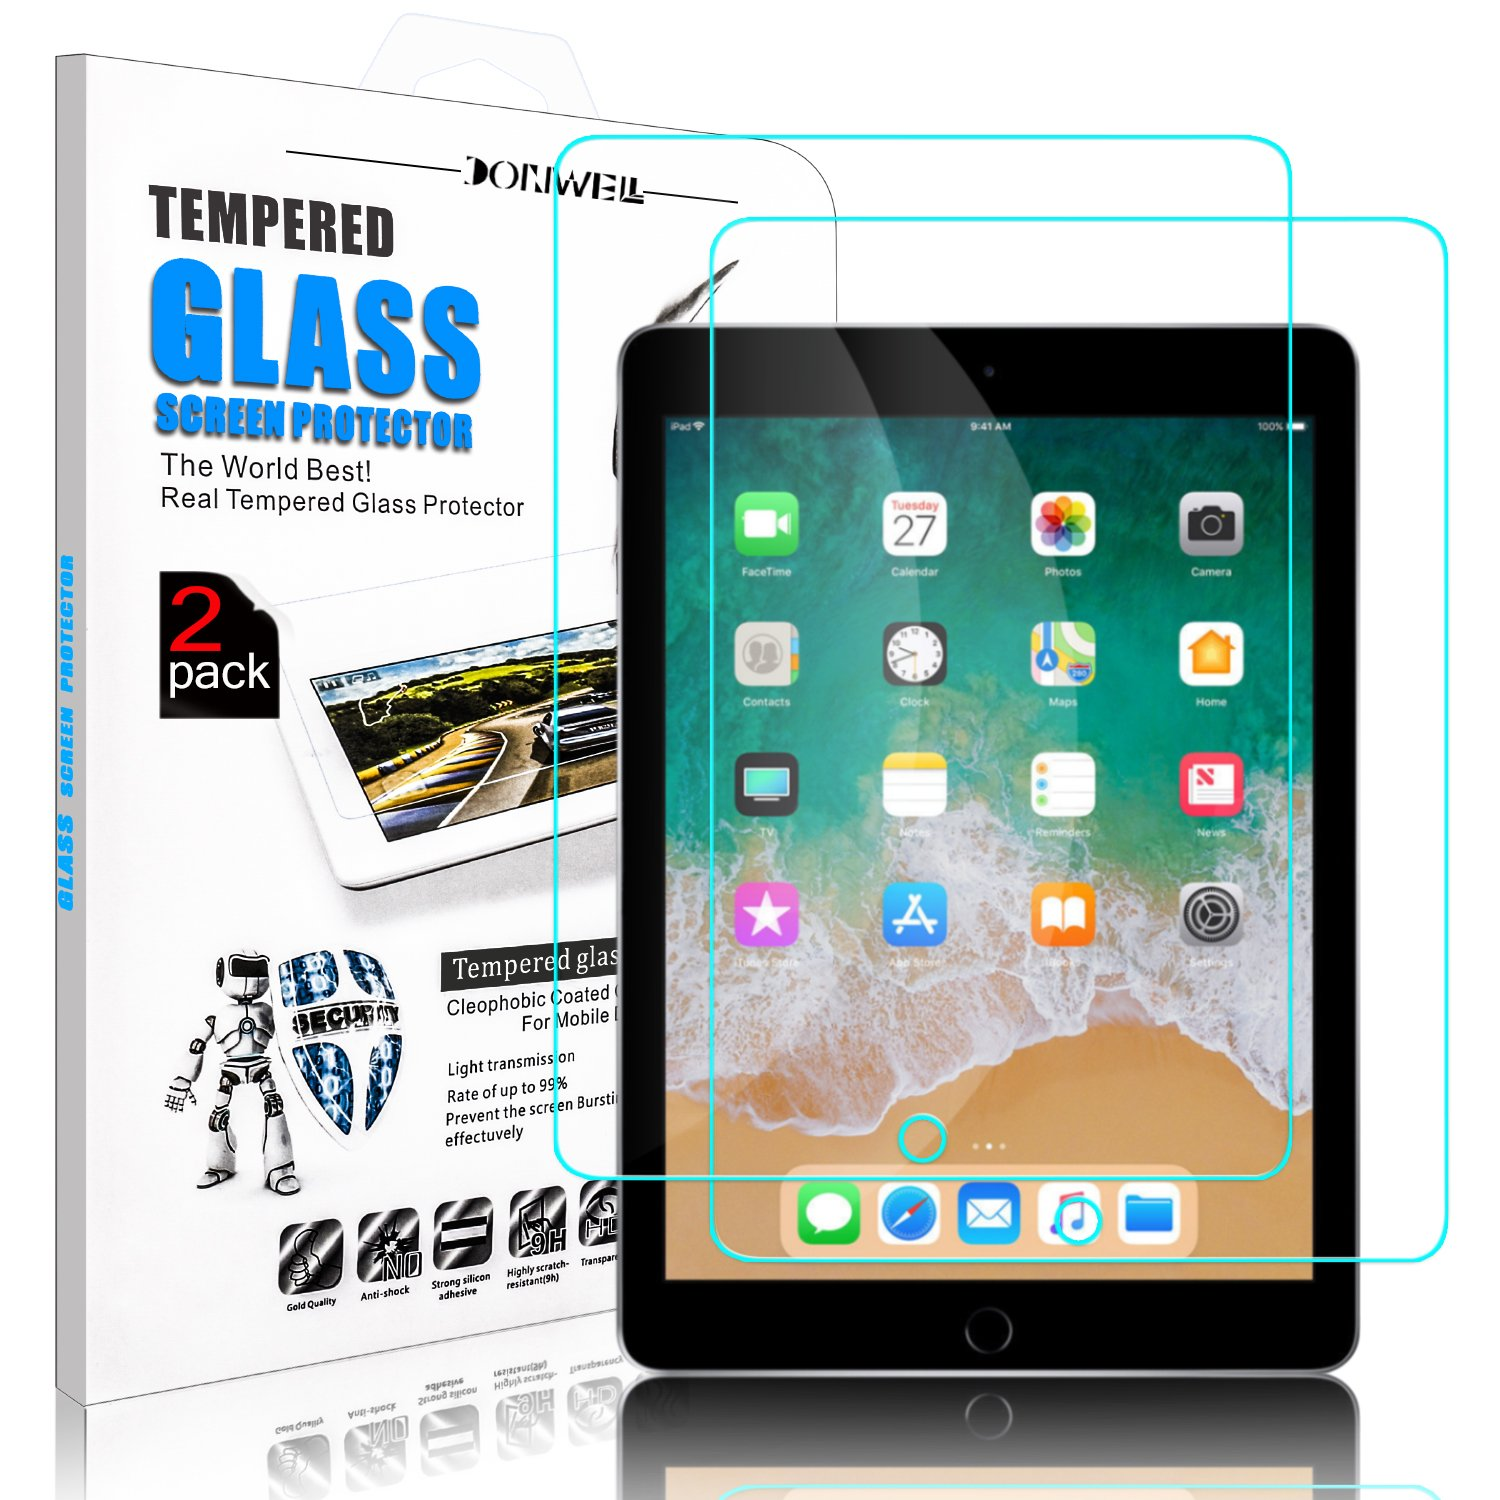 [ 2 Pack ] DONWELL iPad 9.7 2018 Screen Protector Bubble Free Anti Scratch Tempered Glass Protective Cover for Apple iPad 5 5th/6 6th generation/iPad Pro 9.7 Model A1823 A1822 9.7 inch